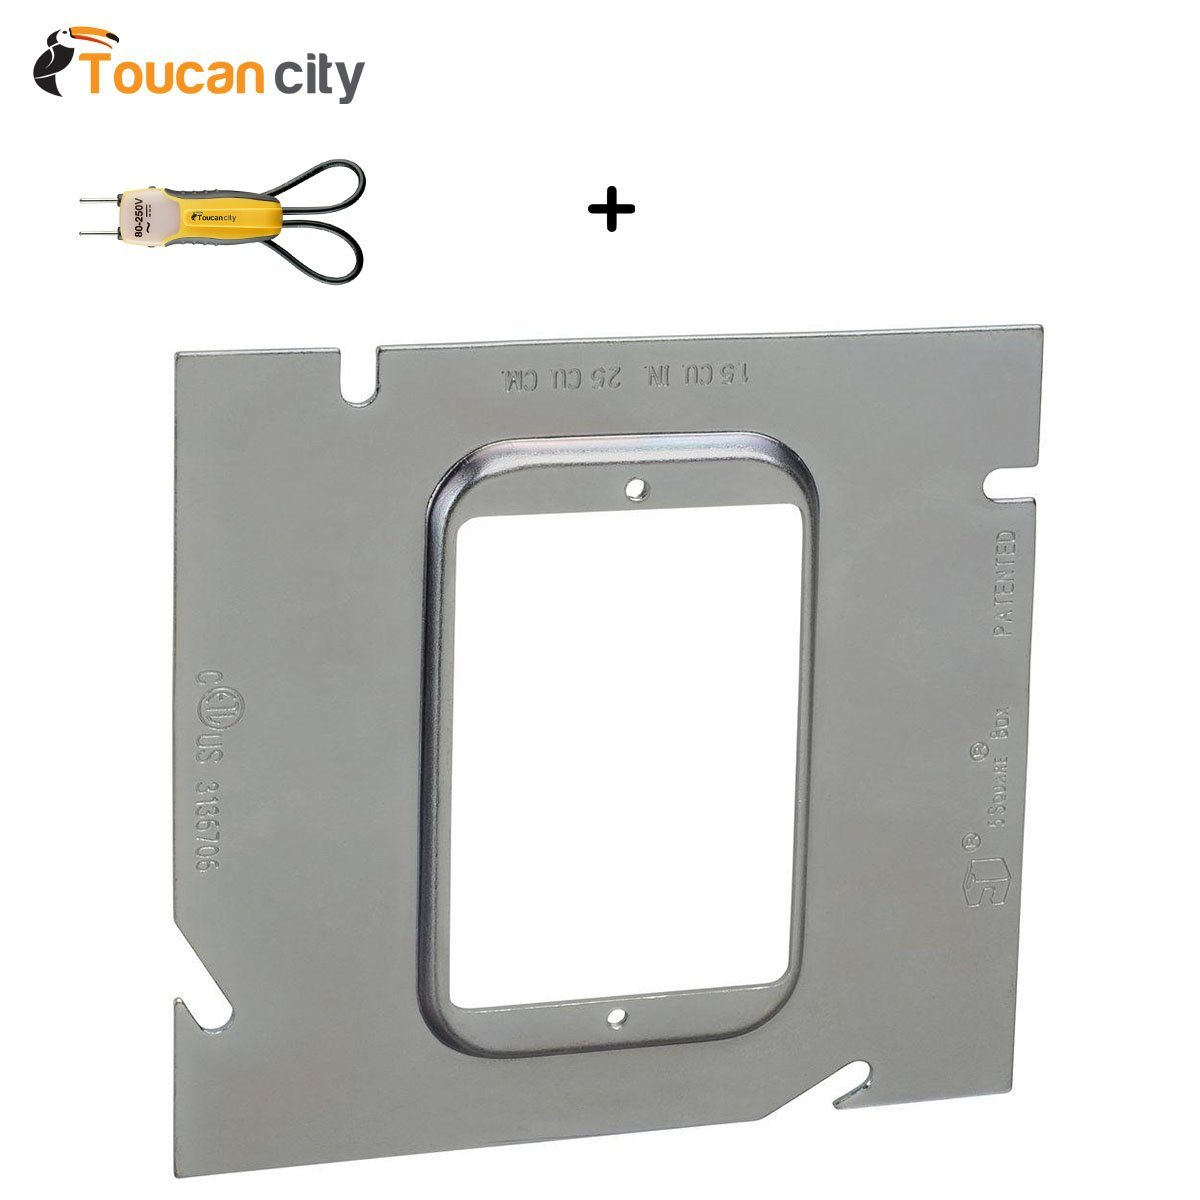 Toucan City Voltage Tester and 1/4 in. 5-Square Single Gang Ring (20 per Case) 82C-1G-1/4